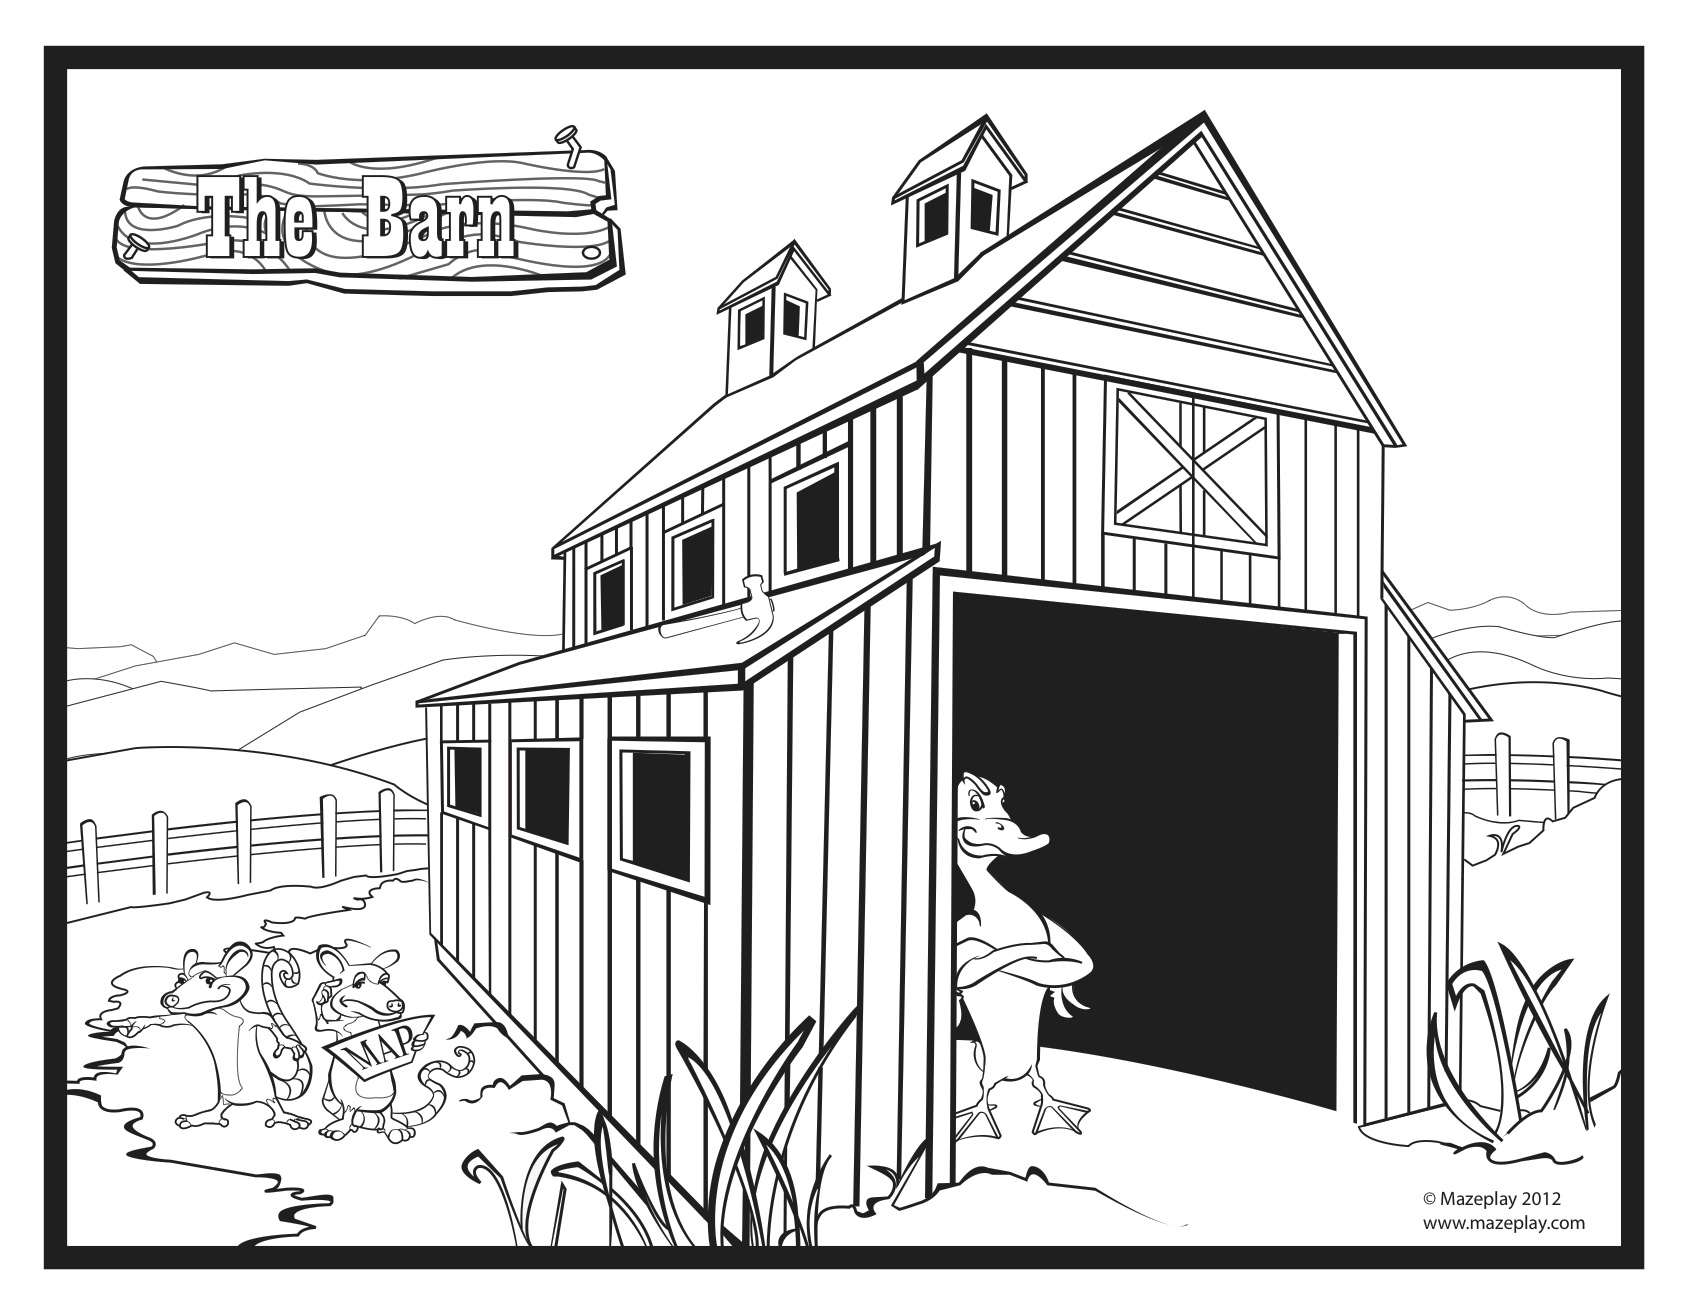 Barn Coloring Pages at GetDrawings.com | Free for personal ...